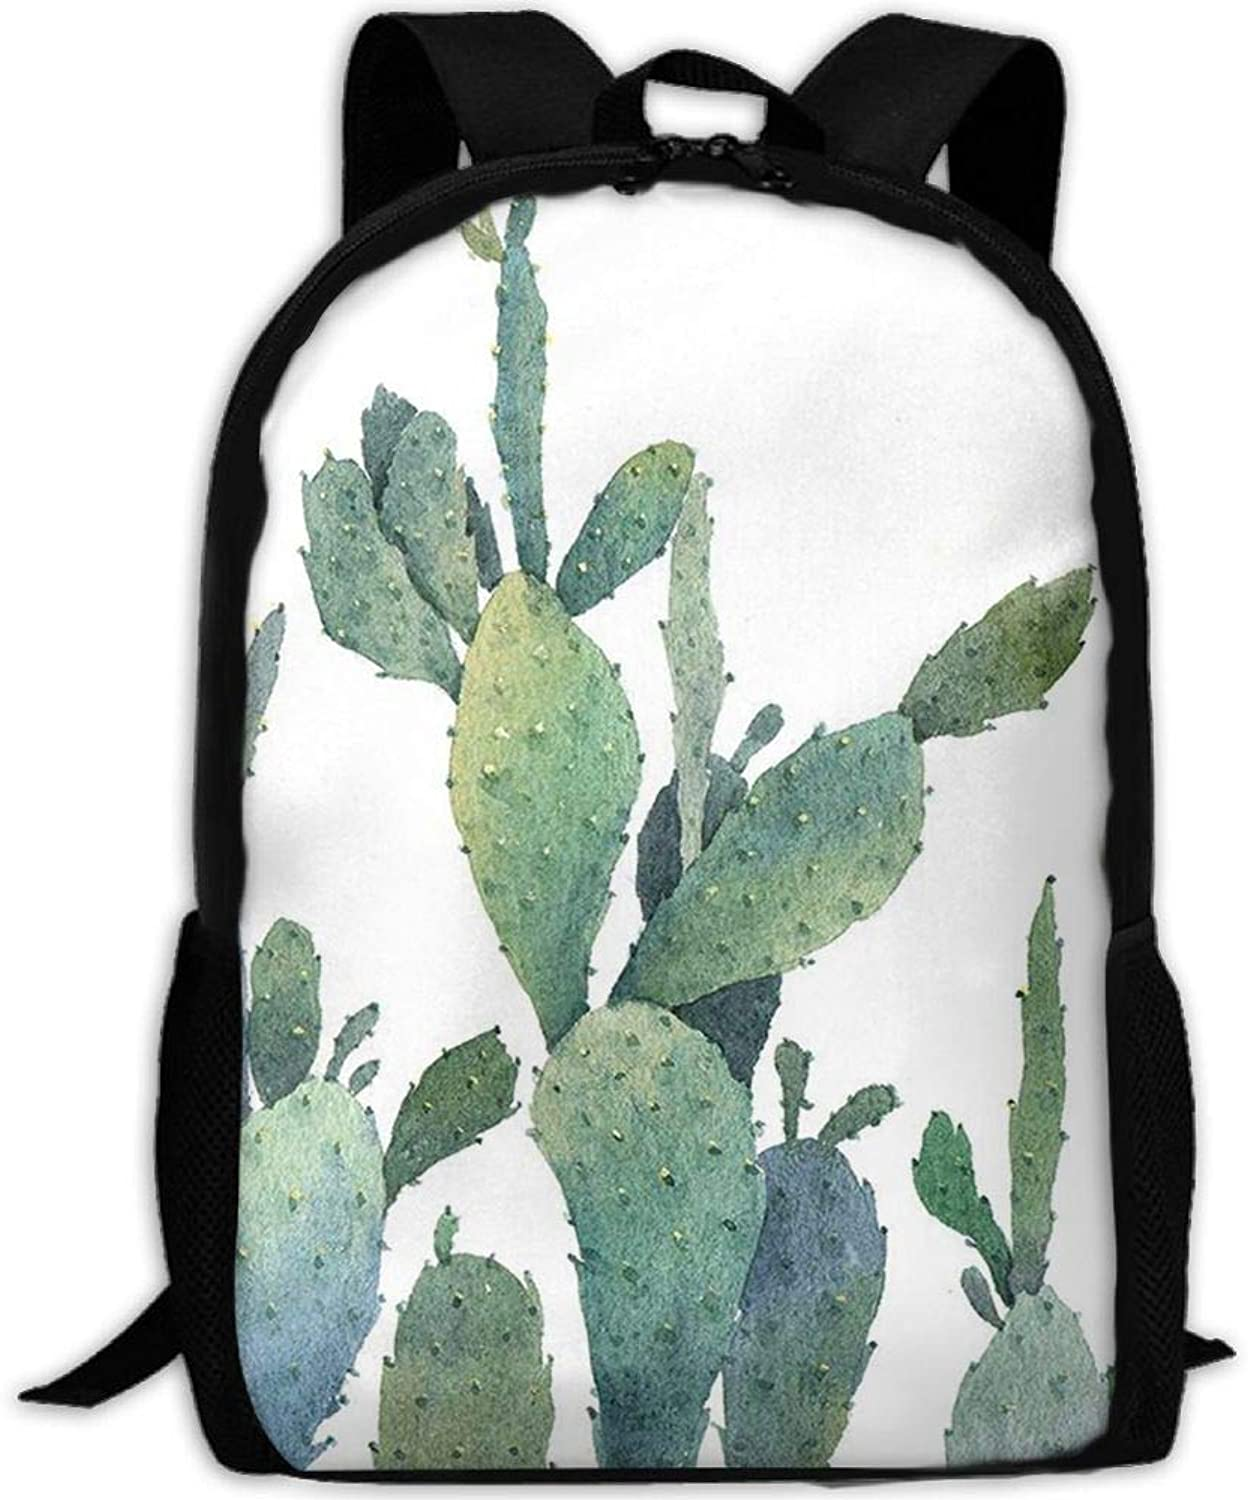 Adult Backpack Green Cactus College Daypack Oxford Bag Unisex Business Travel Sports Bag with Adjustable Strap